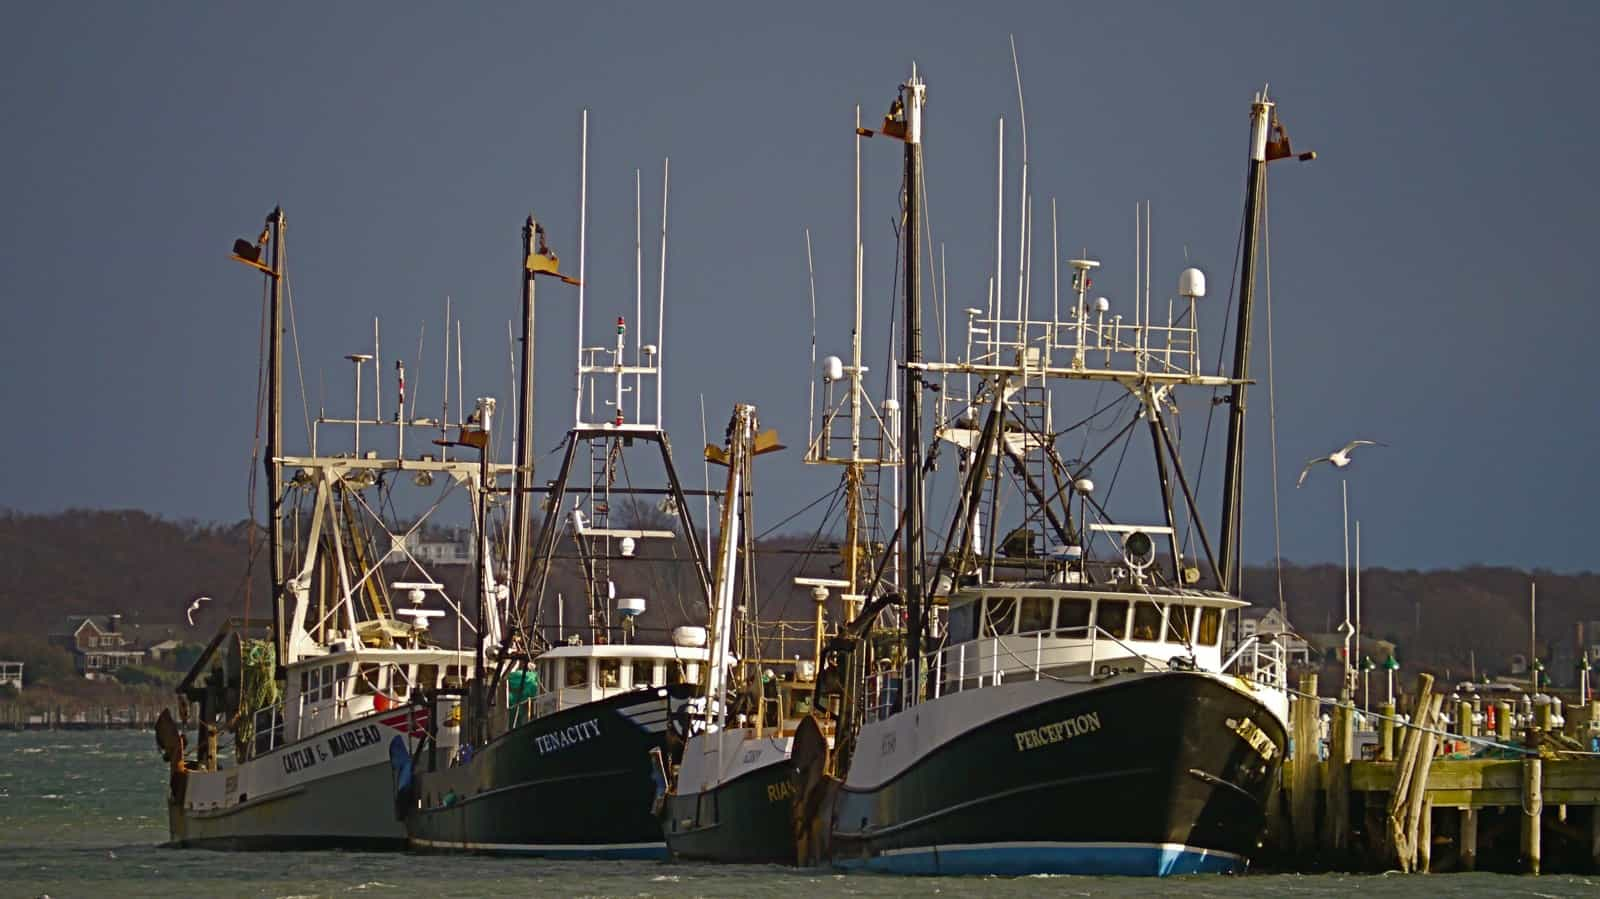 F/V Perception, F/V Rianda S, S/V Tenacity, and S/V Caitlin & Mairead lay on town dock. Montauk Harbor, NY